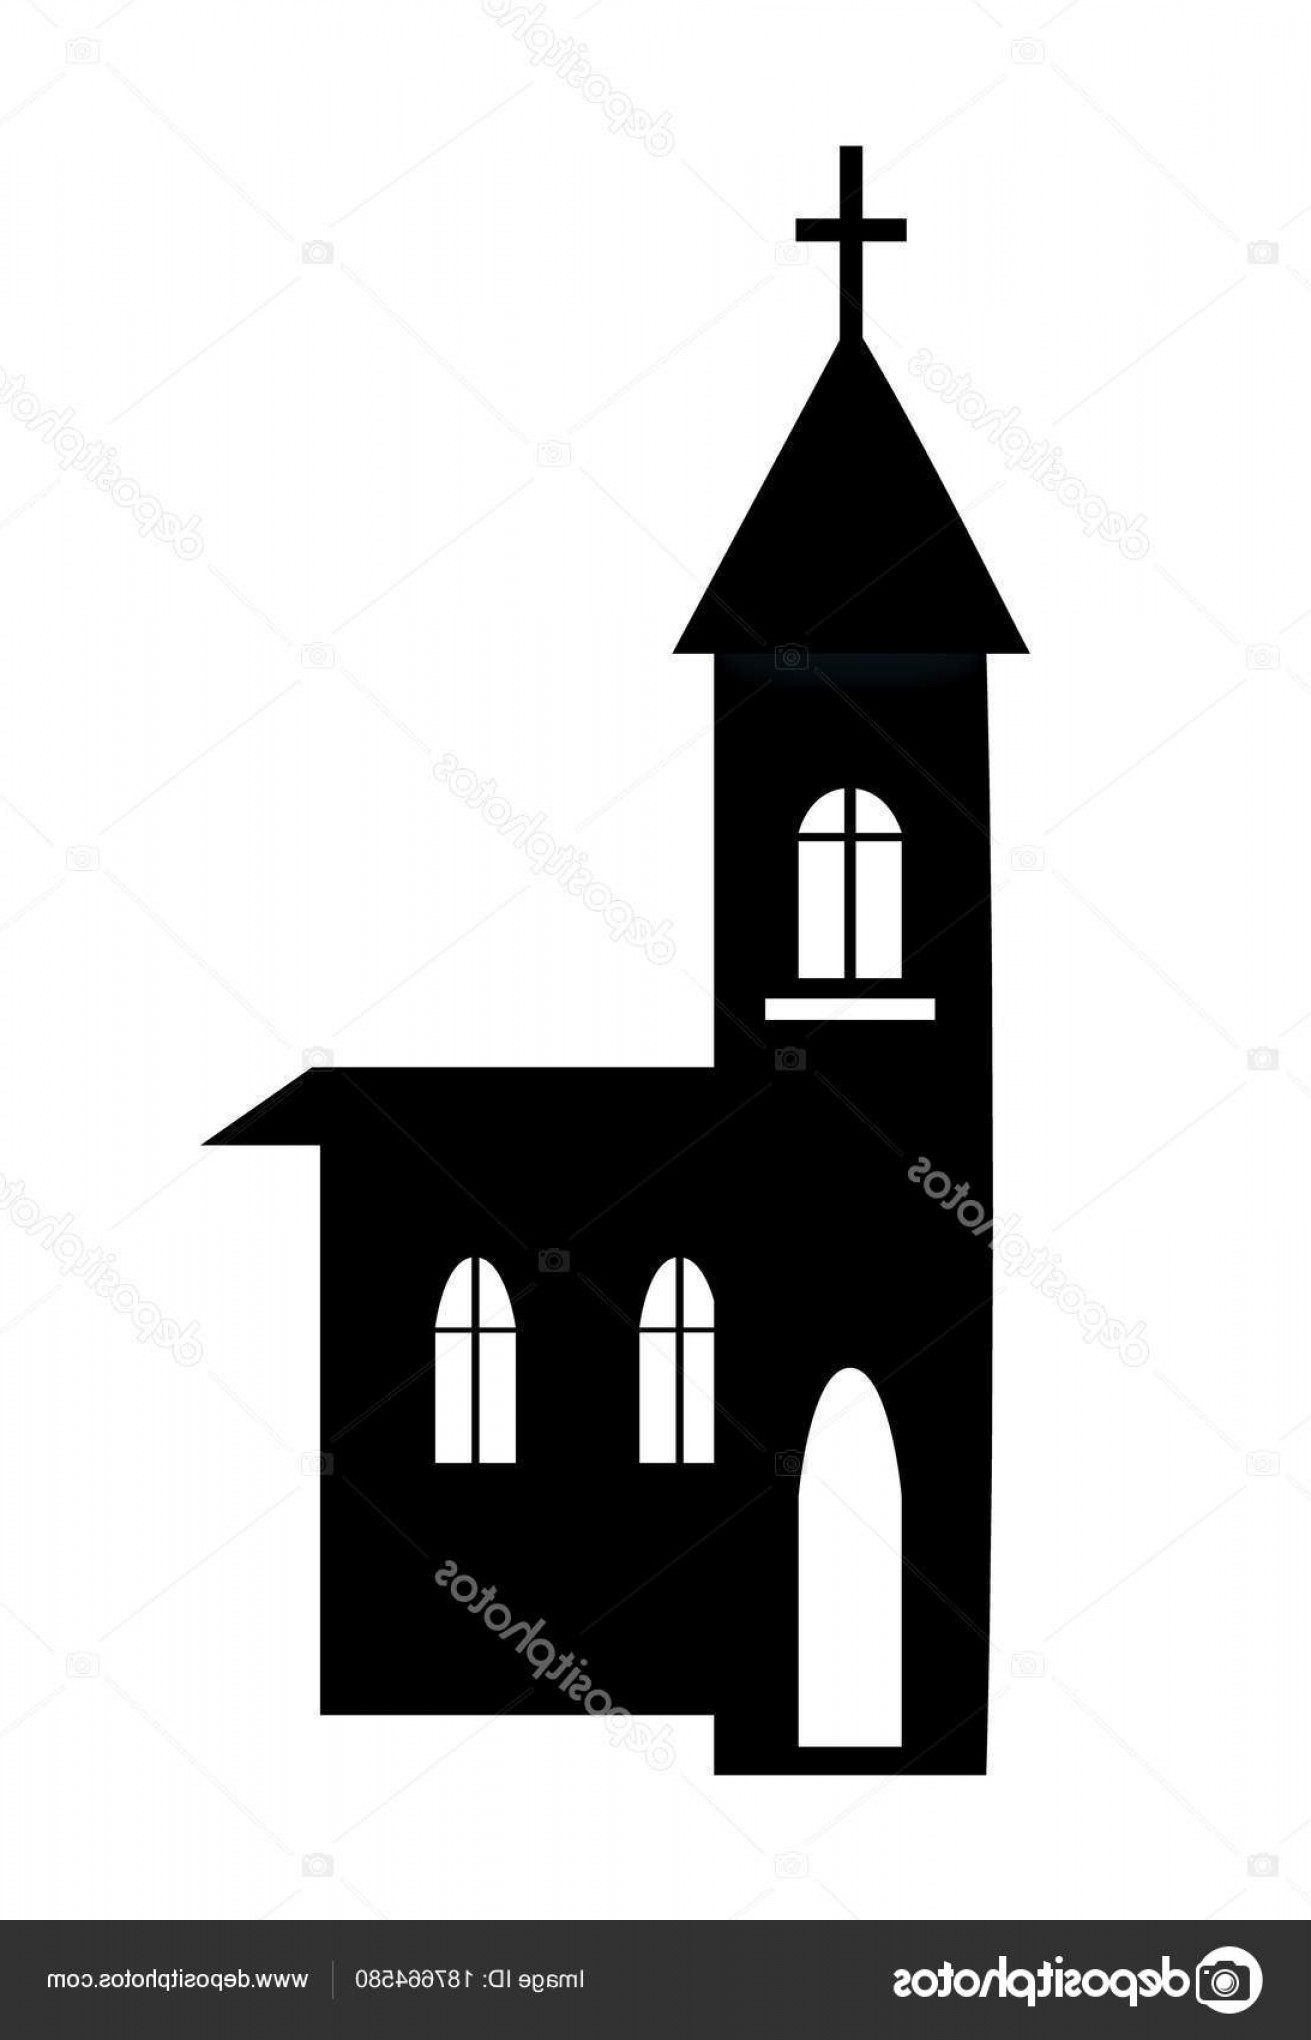 Church Silhouette Vector: Stock Illustration Church Building Silhouette Vector Illustration